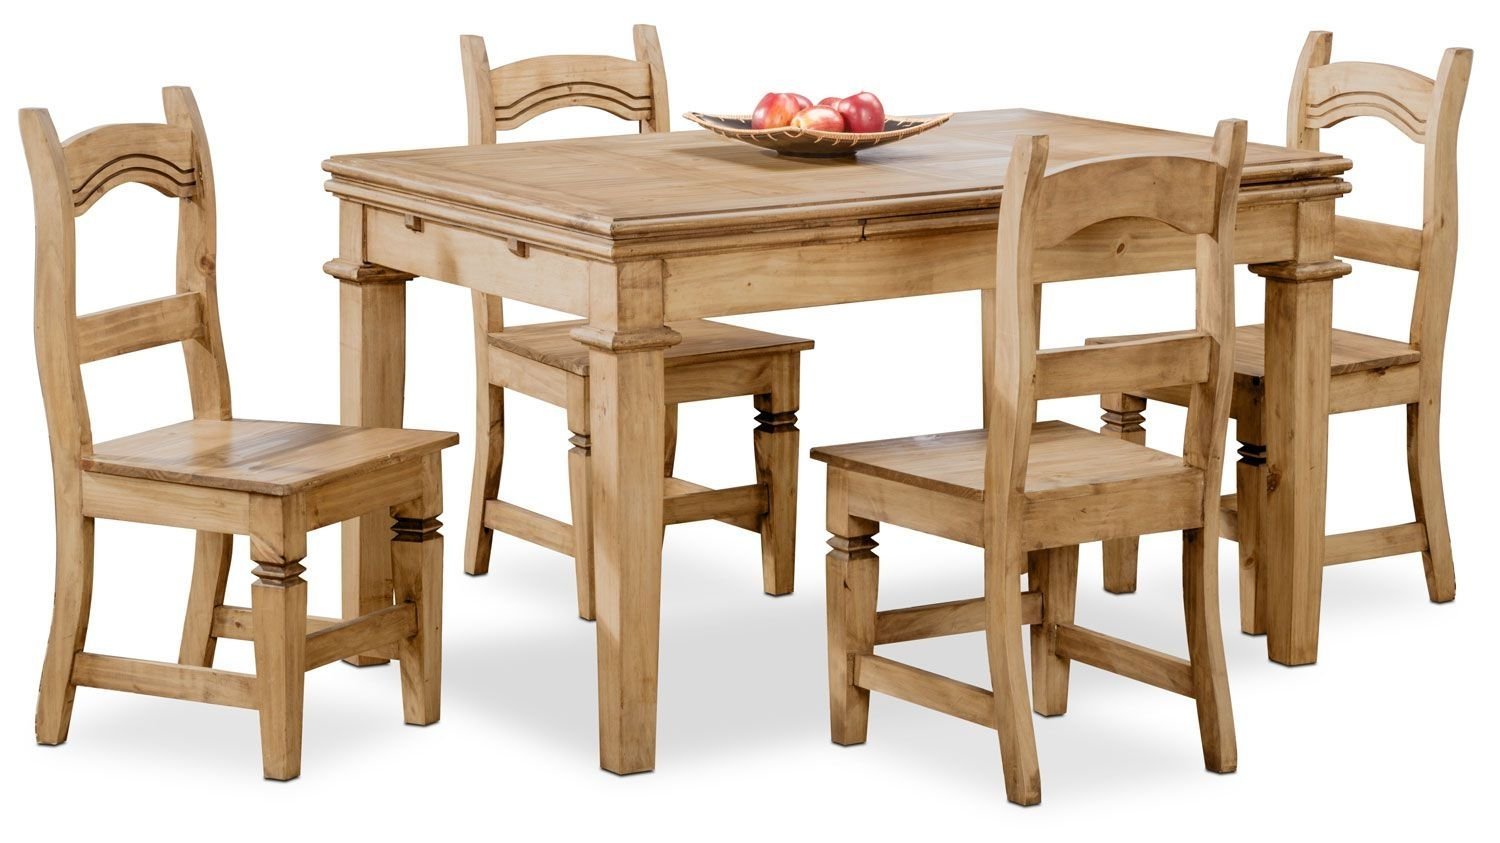 Santa Fe Rusticos 5 Piece Dining Package Durable Furniture Rustic Wood Furniture Pine Dining Chairs